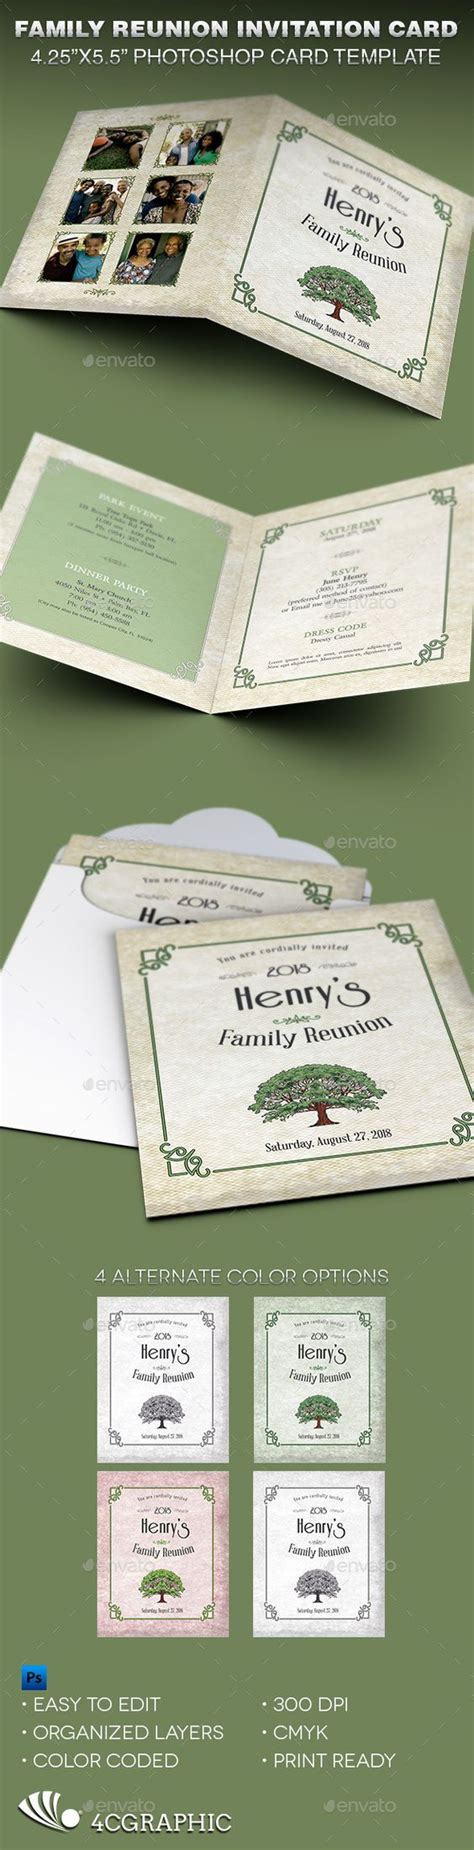 family card templates family reunion invitation card template reunions family